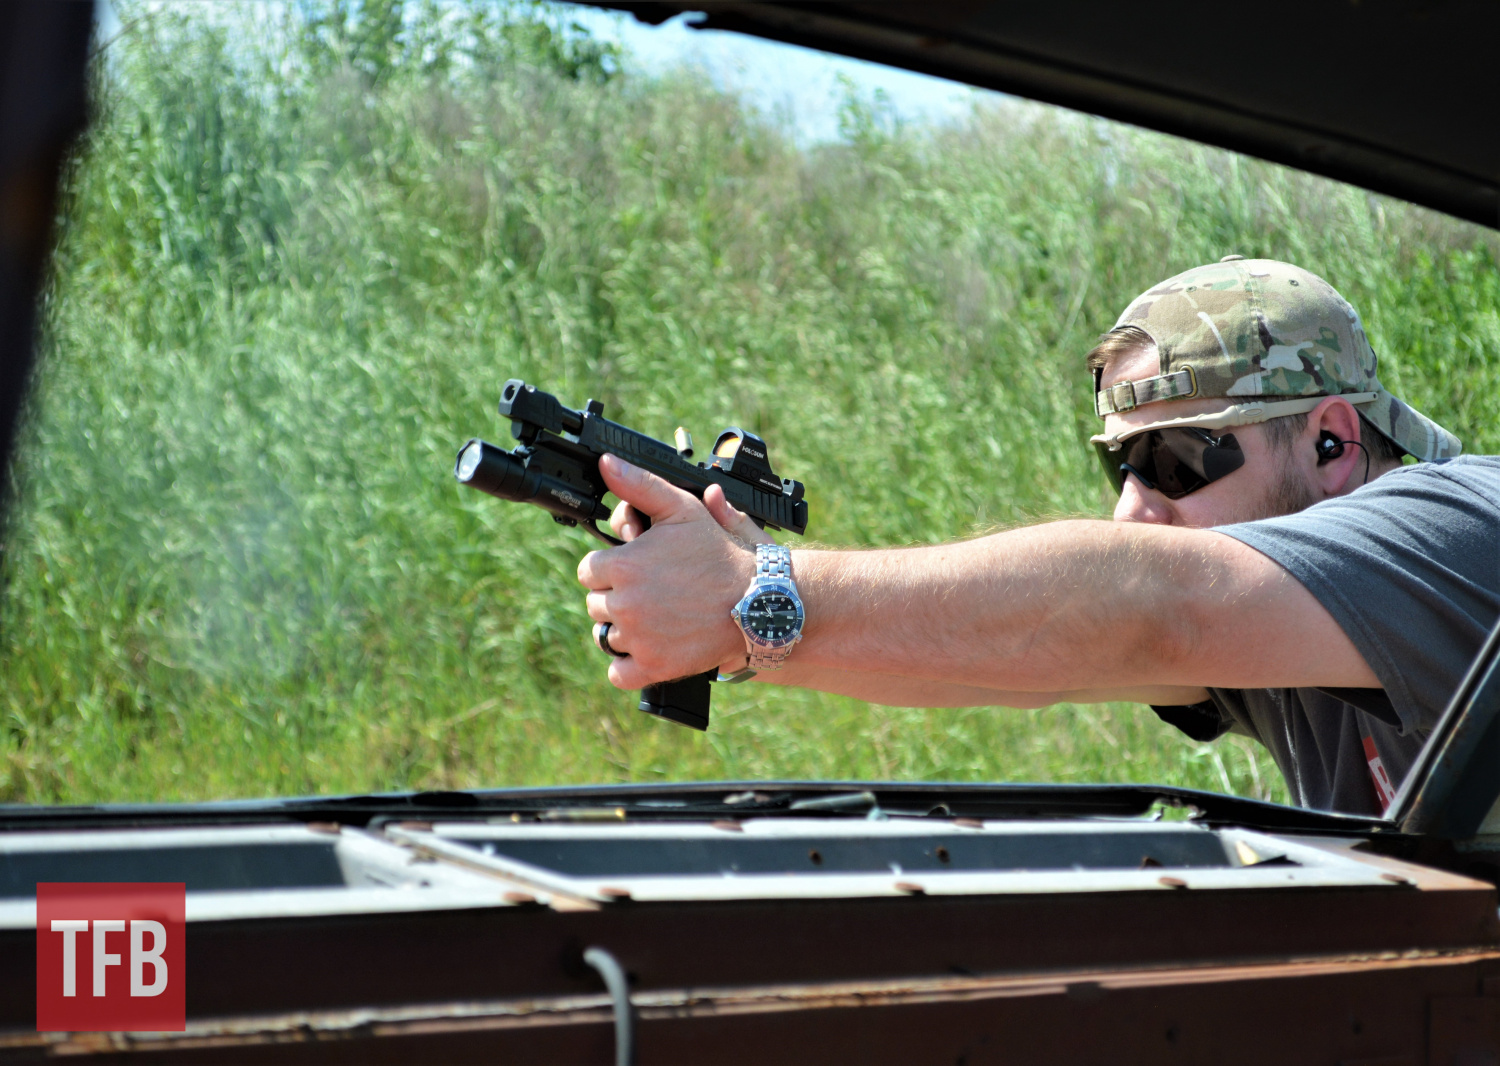 Obligatory action shot, with dissipating smoke/cycling slide/flying brass. The VP9 was thoroughly enjoyable to shoot!